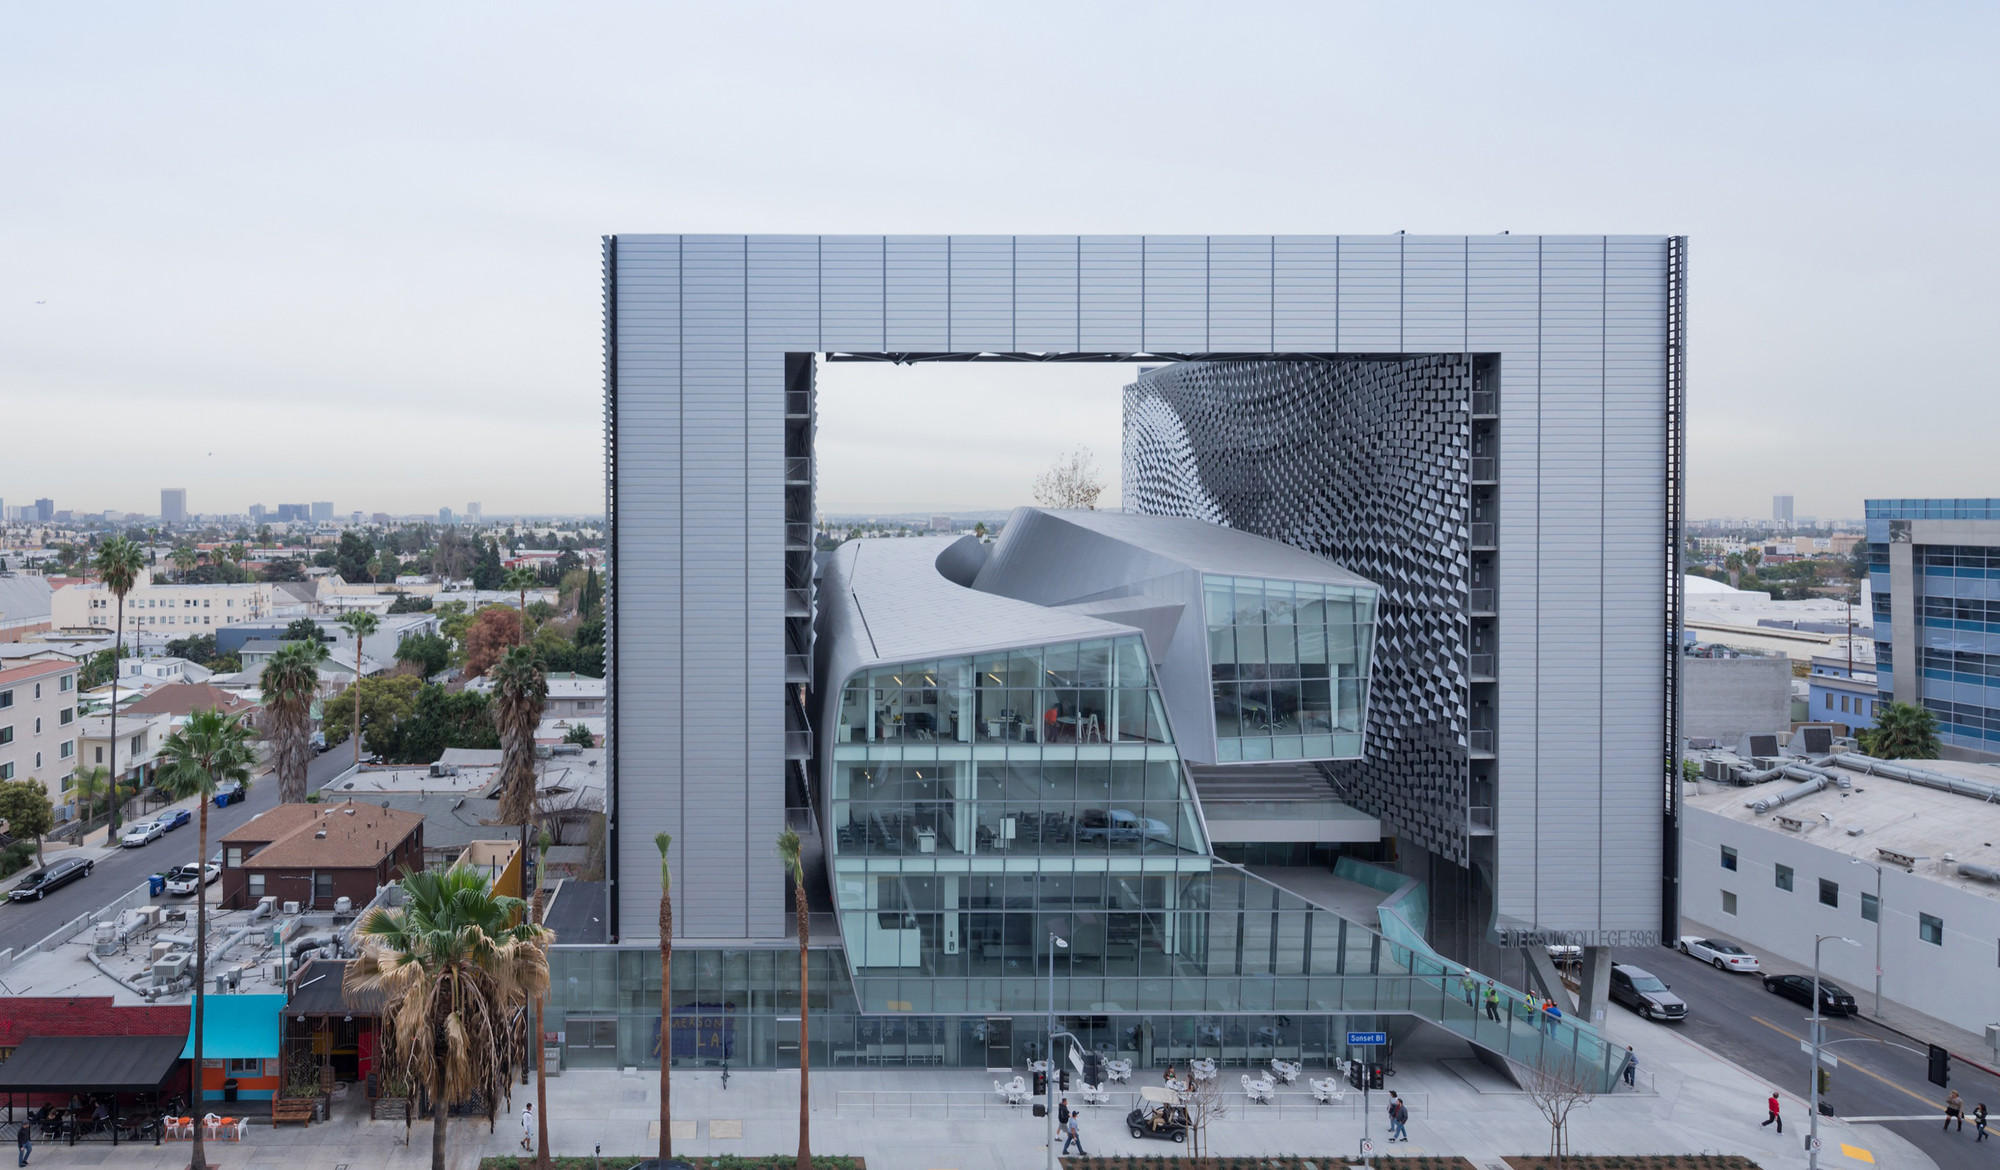 Emerson College Los Angeles / Morphosis Architects, ©  Iwan Baan